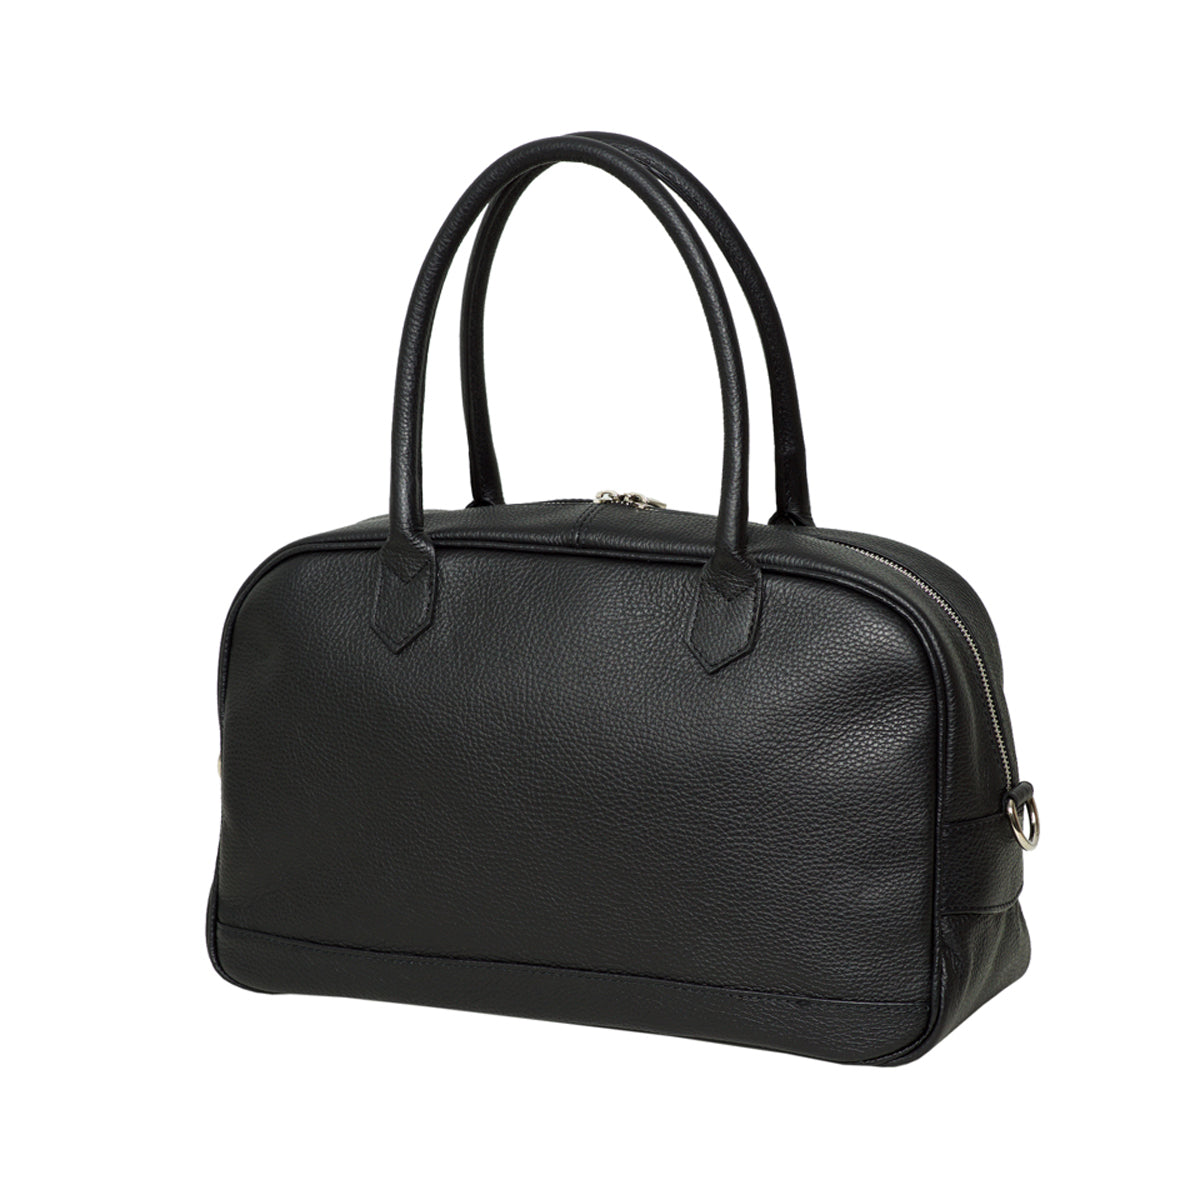 Greta Black Tote Bag